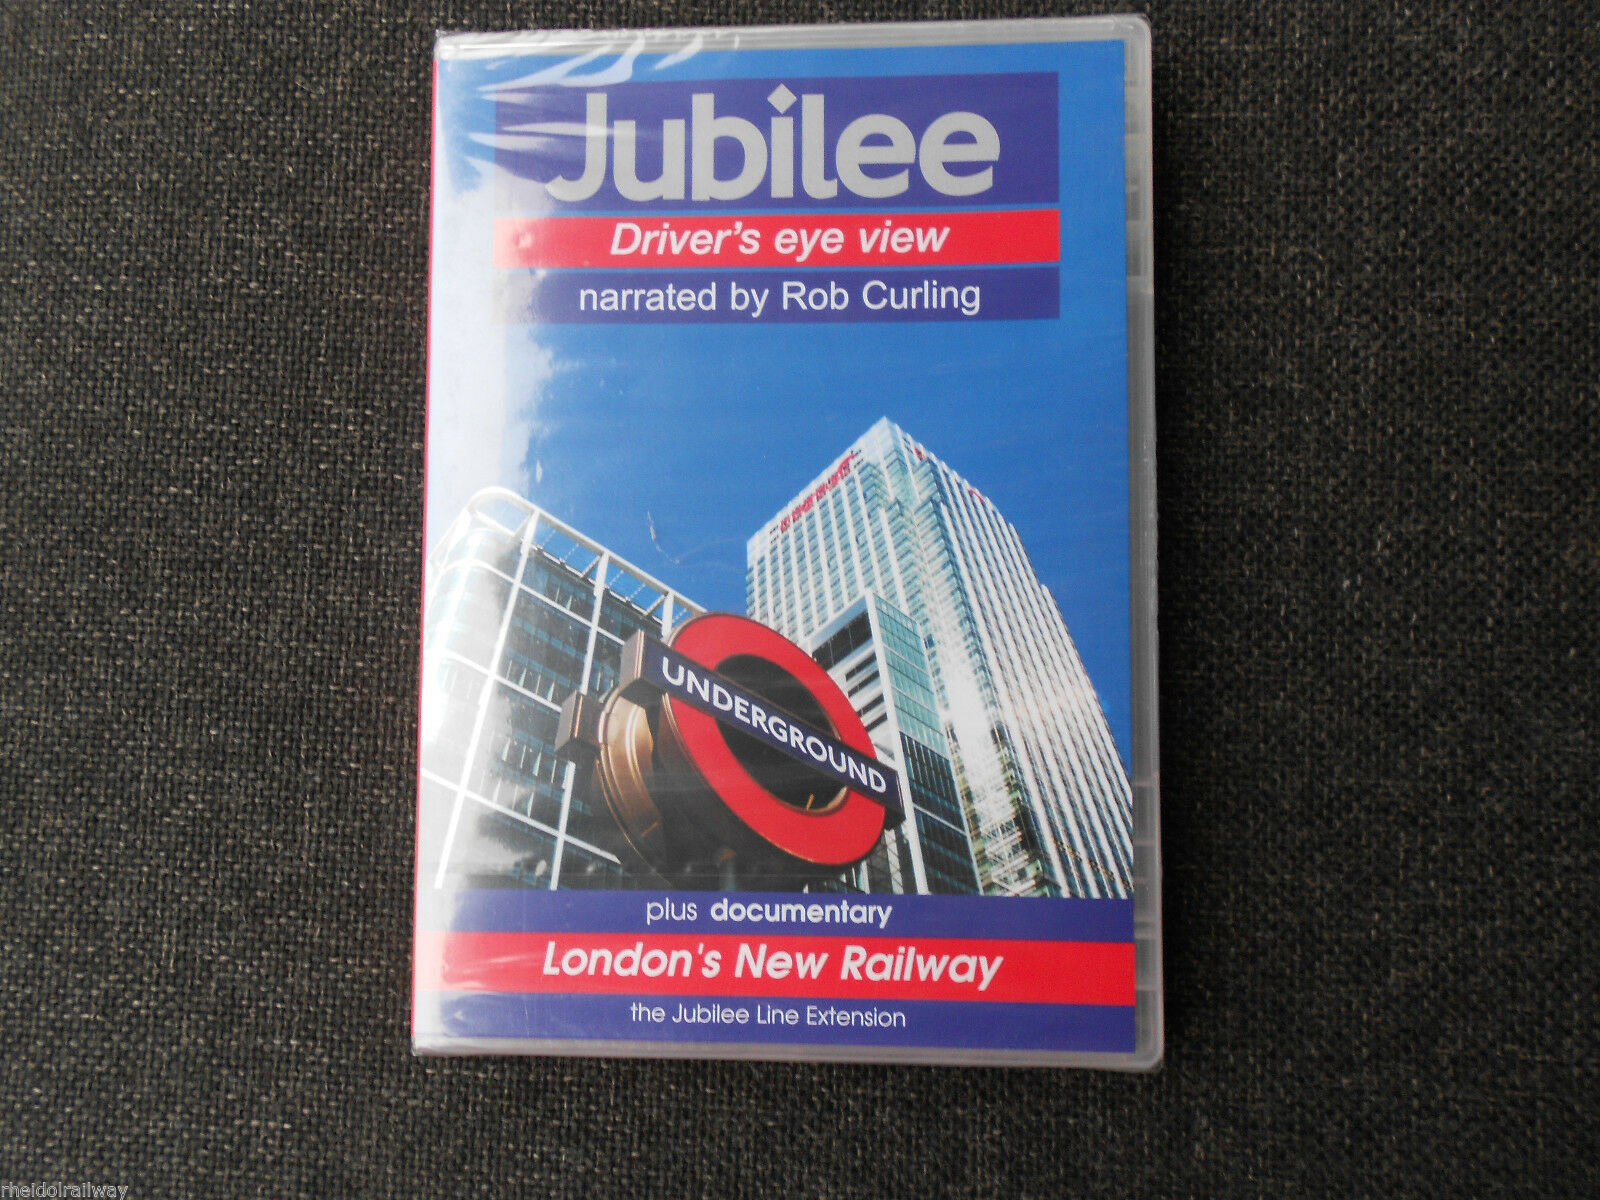 London Underground, Jubilee Driver's Eye View DVD Narrated by Rob Curling - The Vale of Rheidol Railway